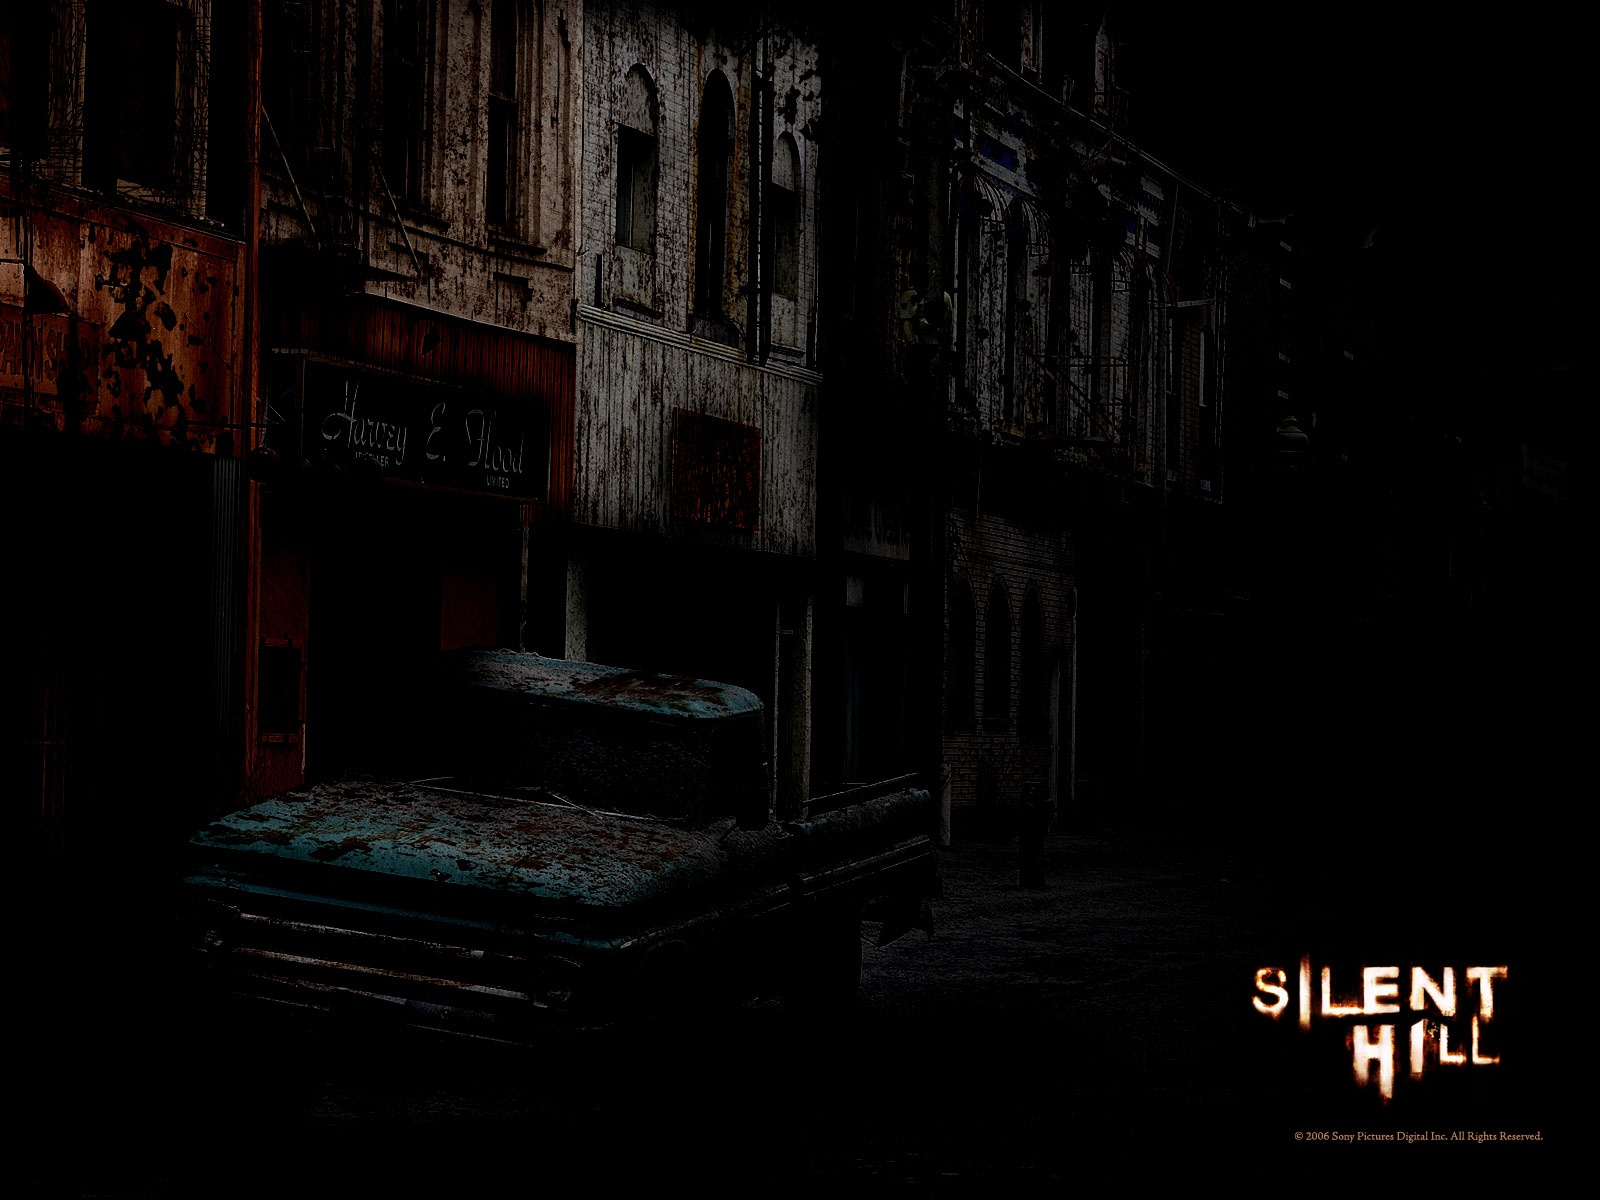 Alice In Wonderland Wallpaper Iphone Silent Hill Dark Wallpapers Silent Hill Dark Stock Photos